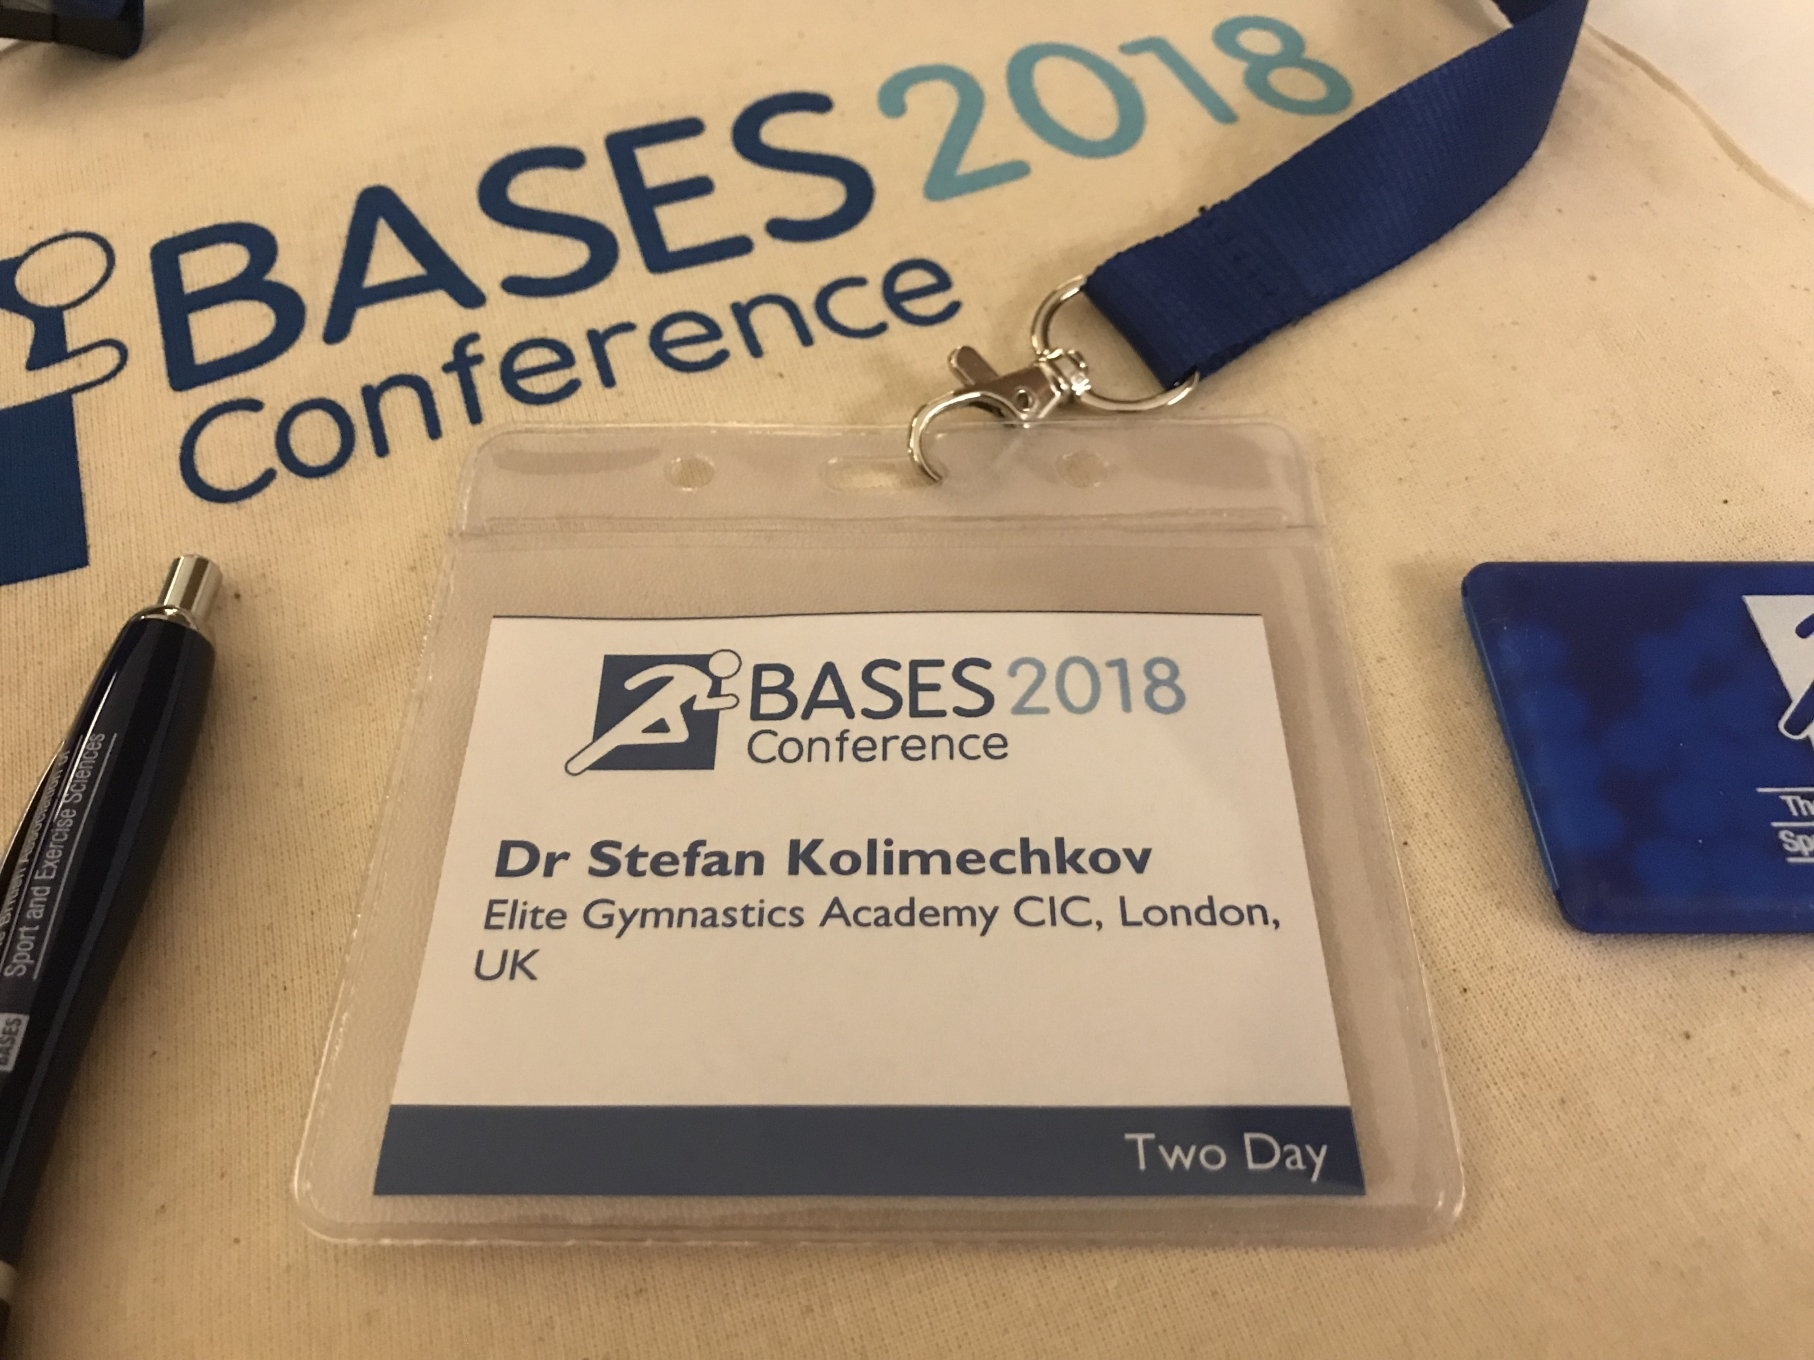 Dr Stefan Kolimechkov at the BASES Conference